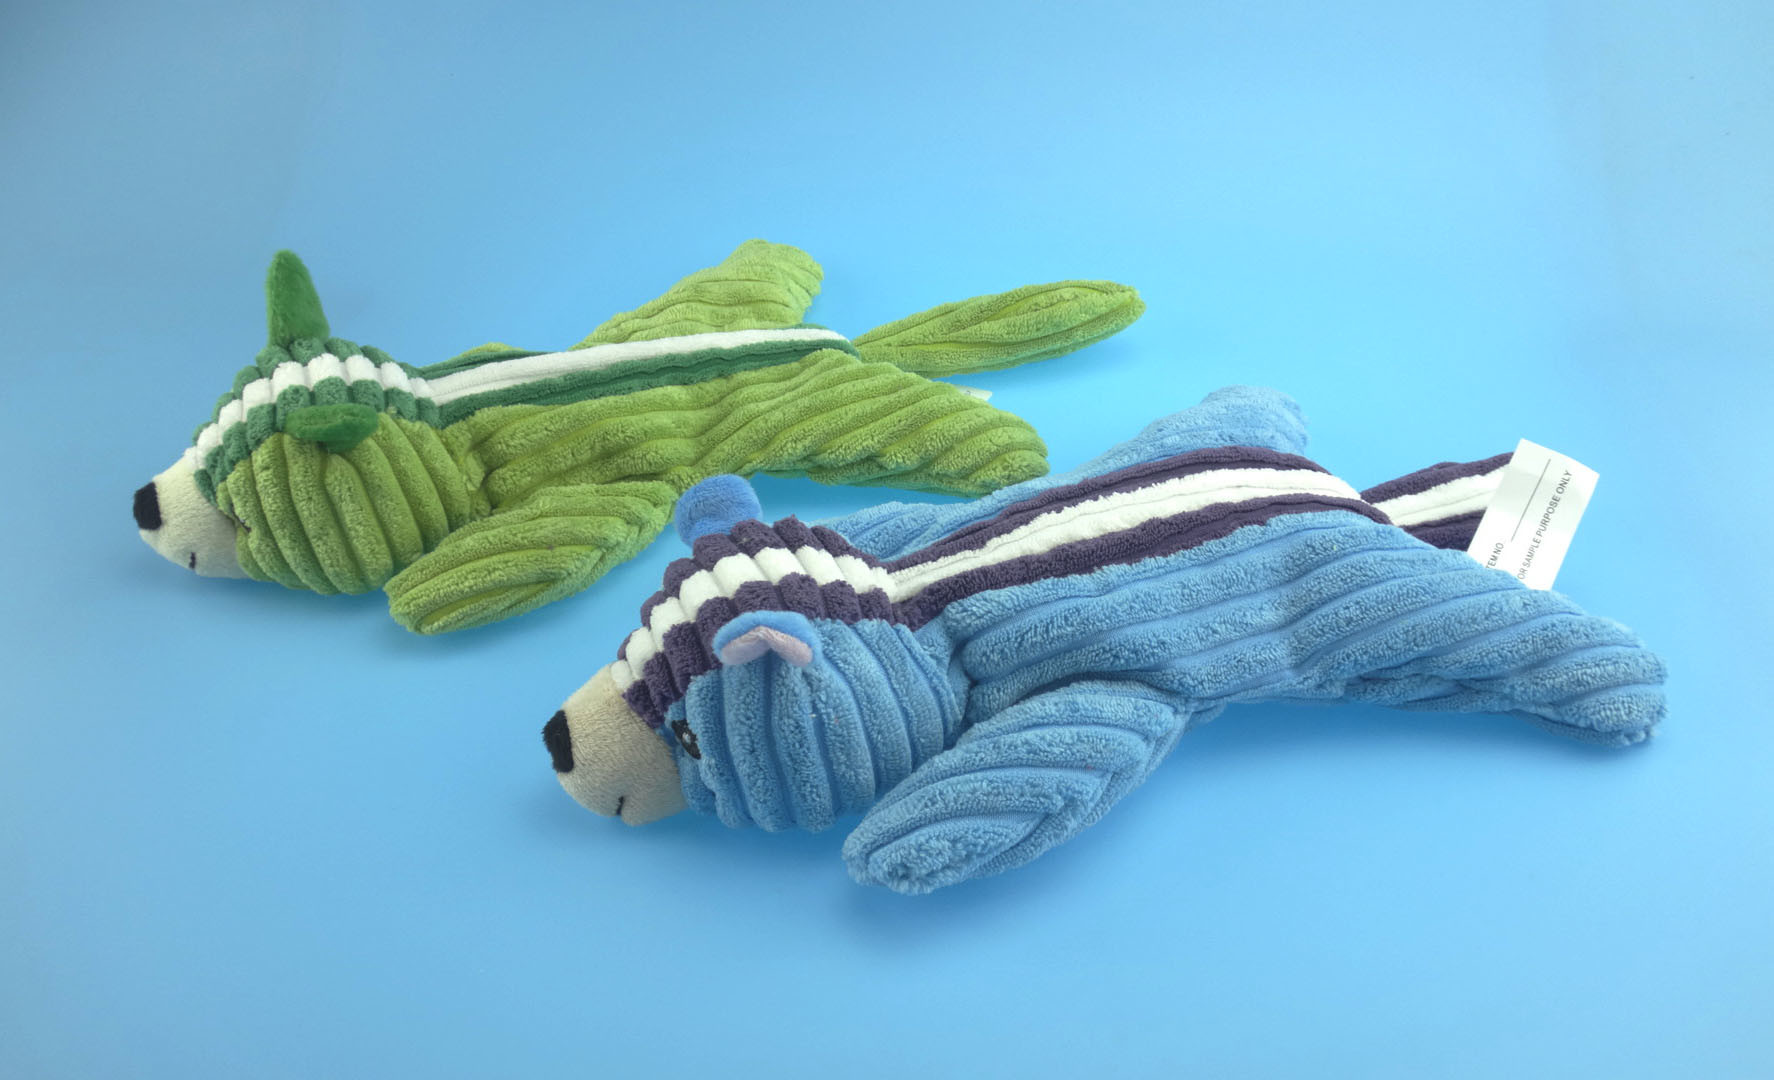 Non-Stuffed Skunk Toy for Dog Biting with Four Colors